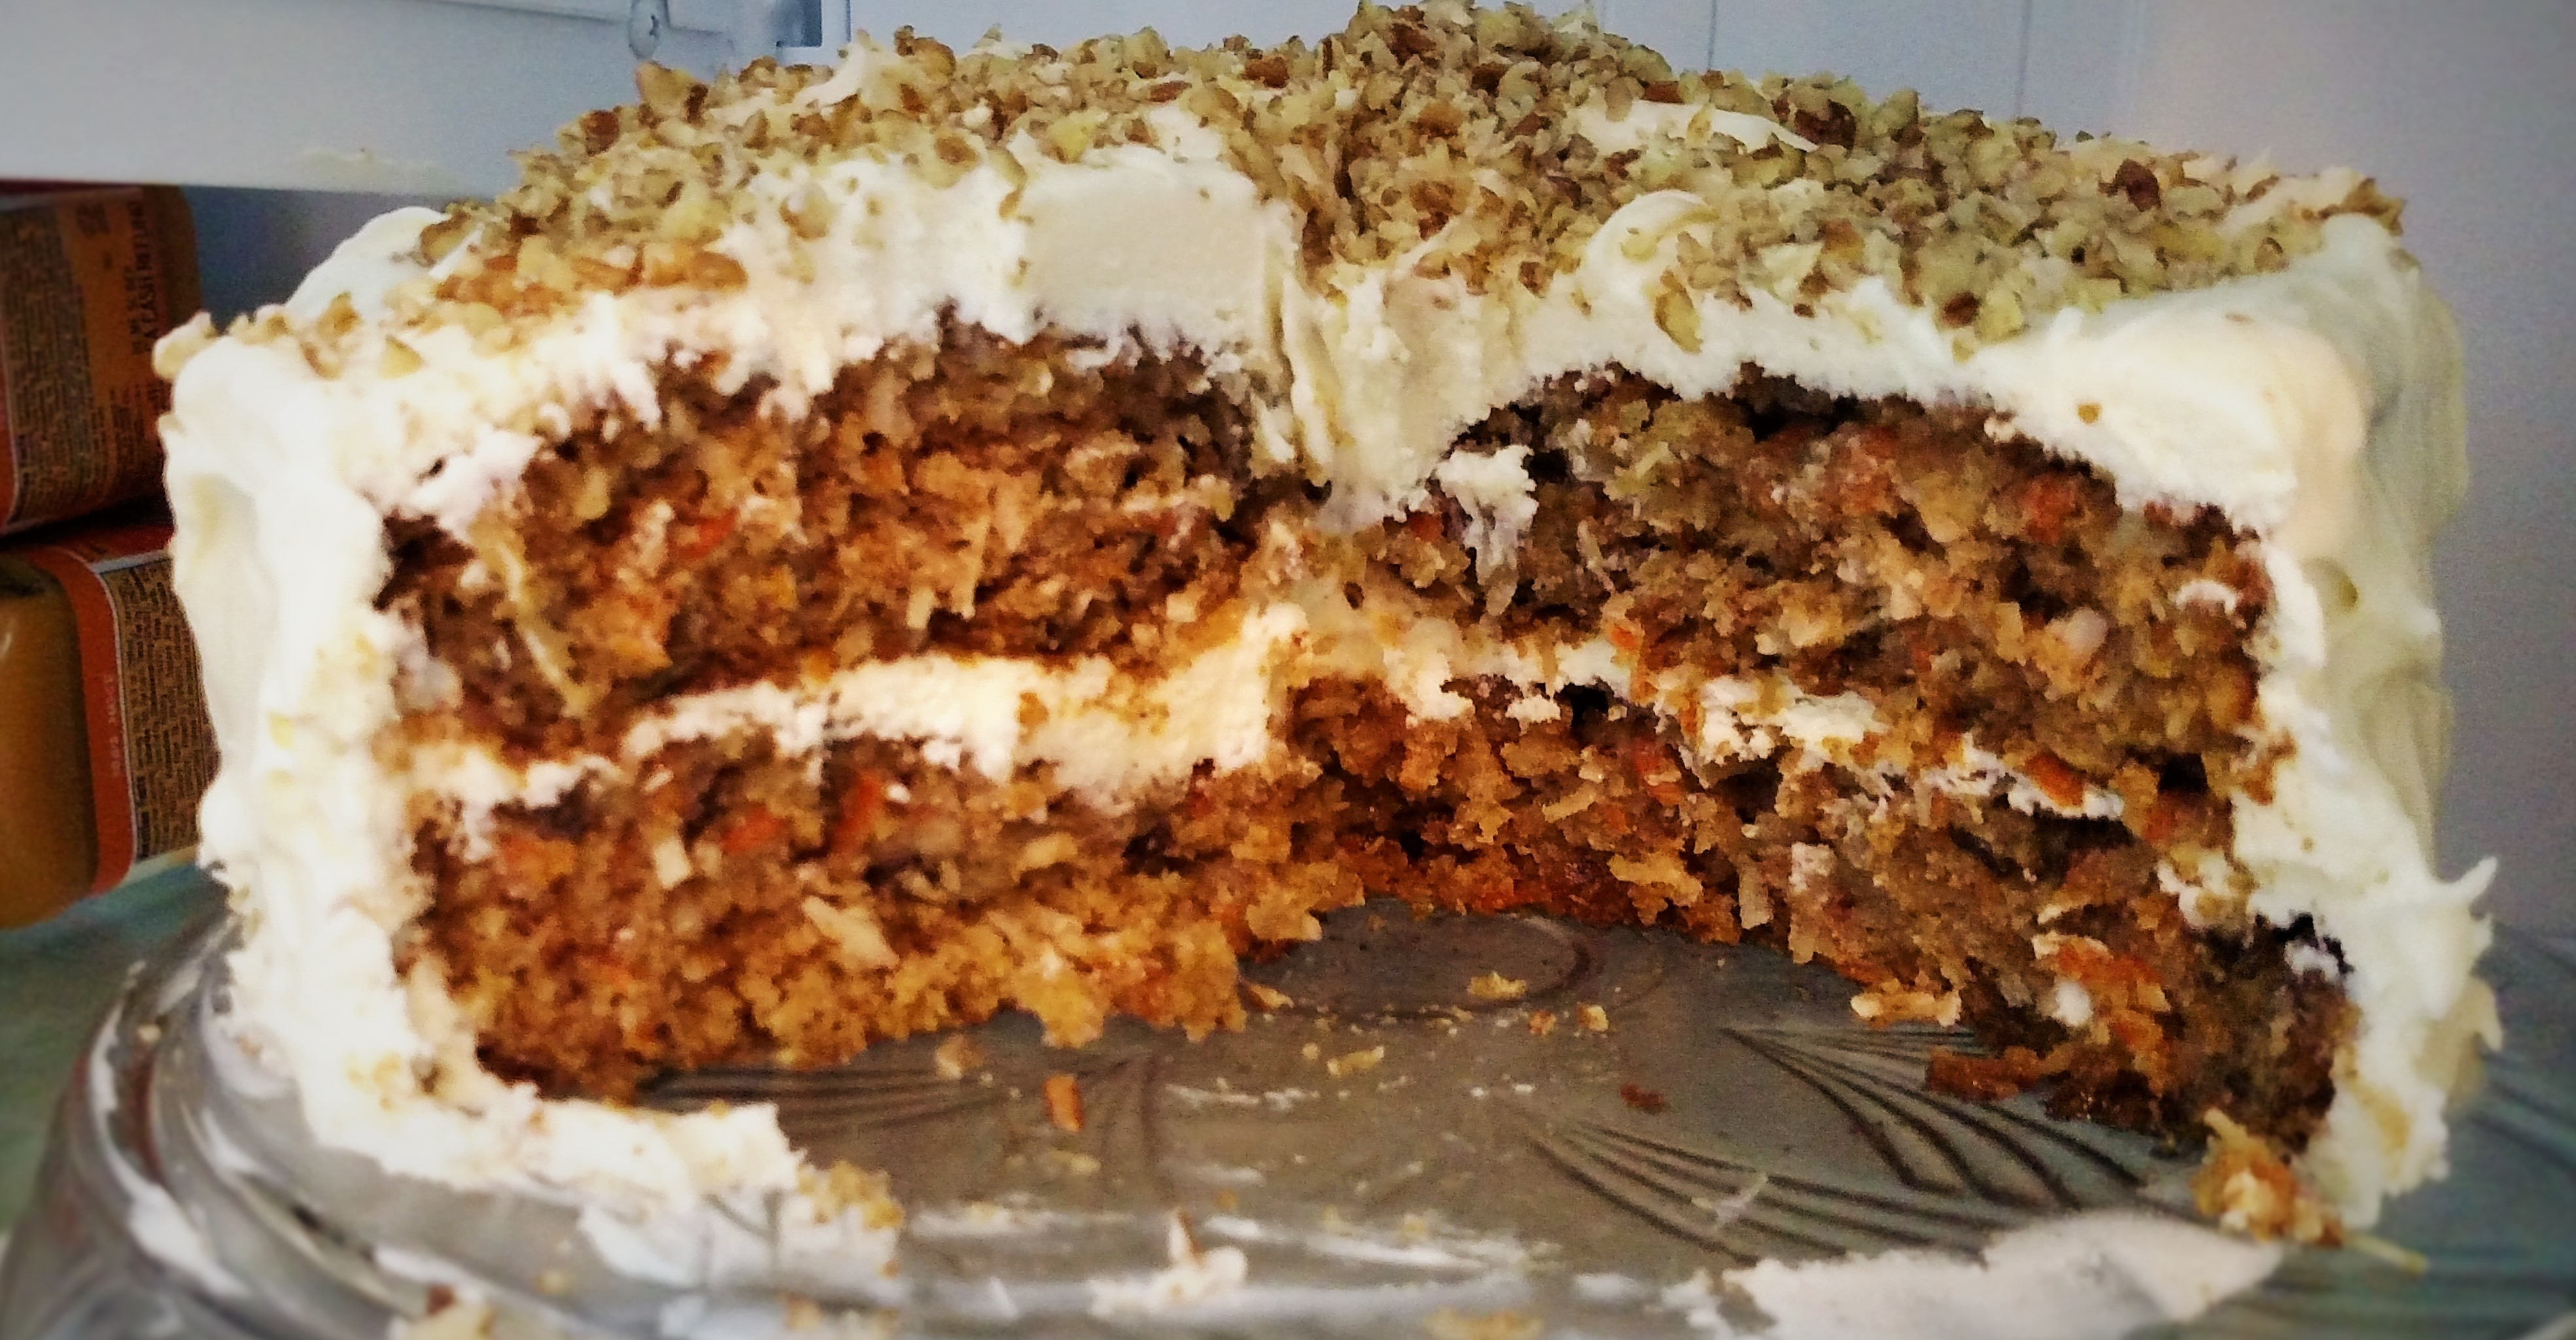 Outback Steakhouse Carrot Cake Recipe